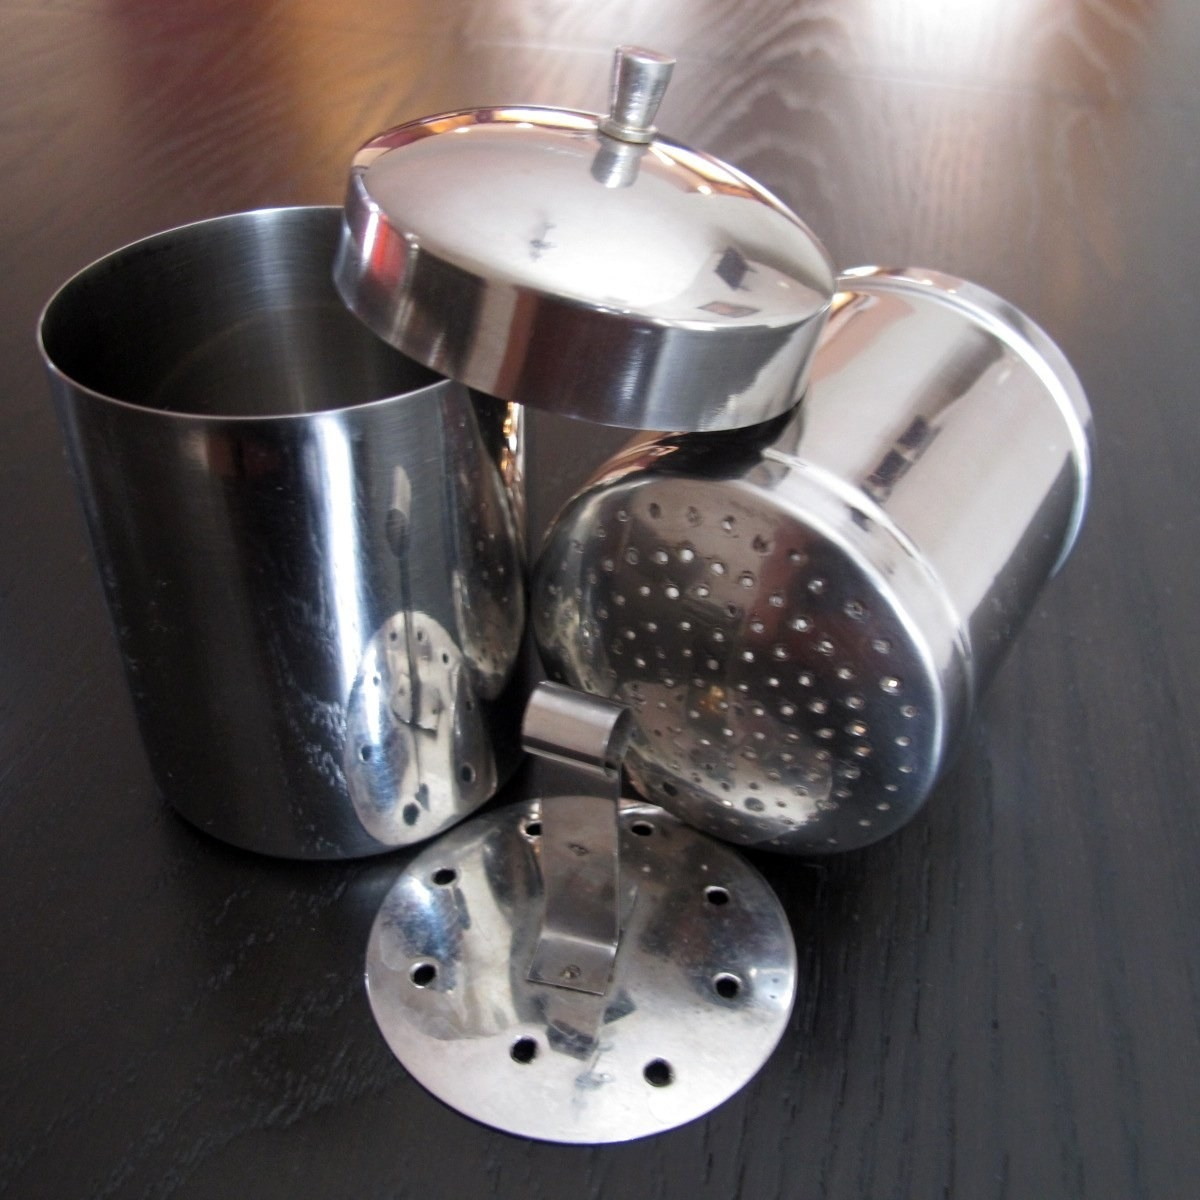 The coffee maker with its different parts laid out on a table